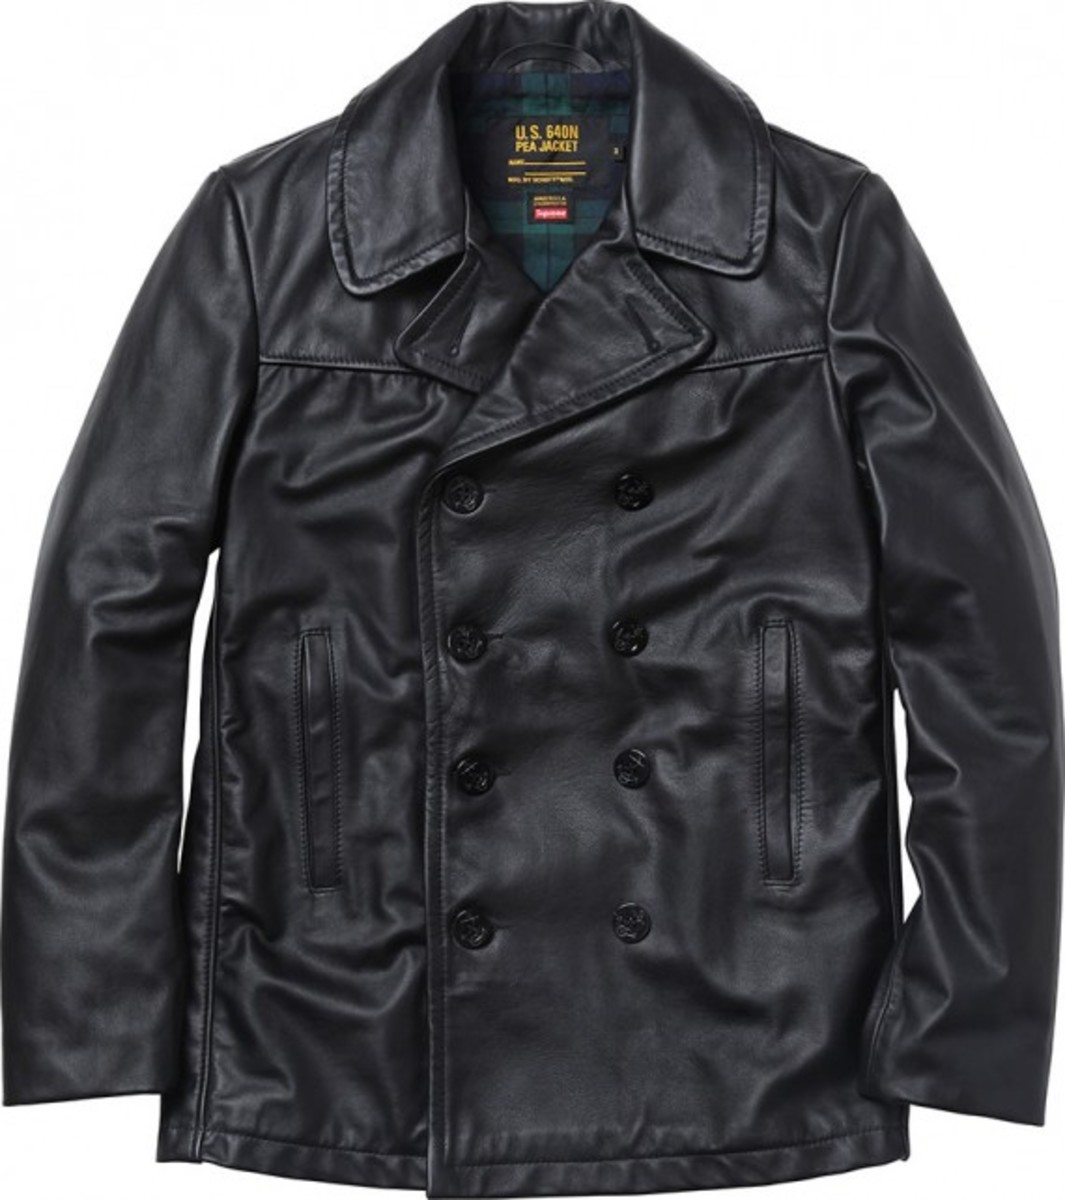 3-schott--r--_leather_pea_jacket-zoom_1345454997